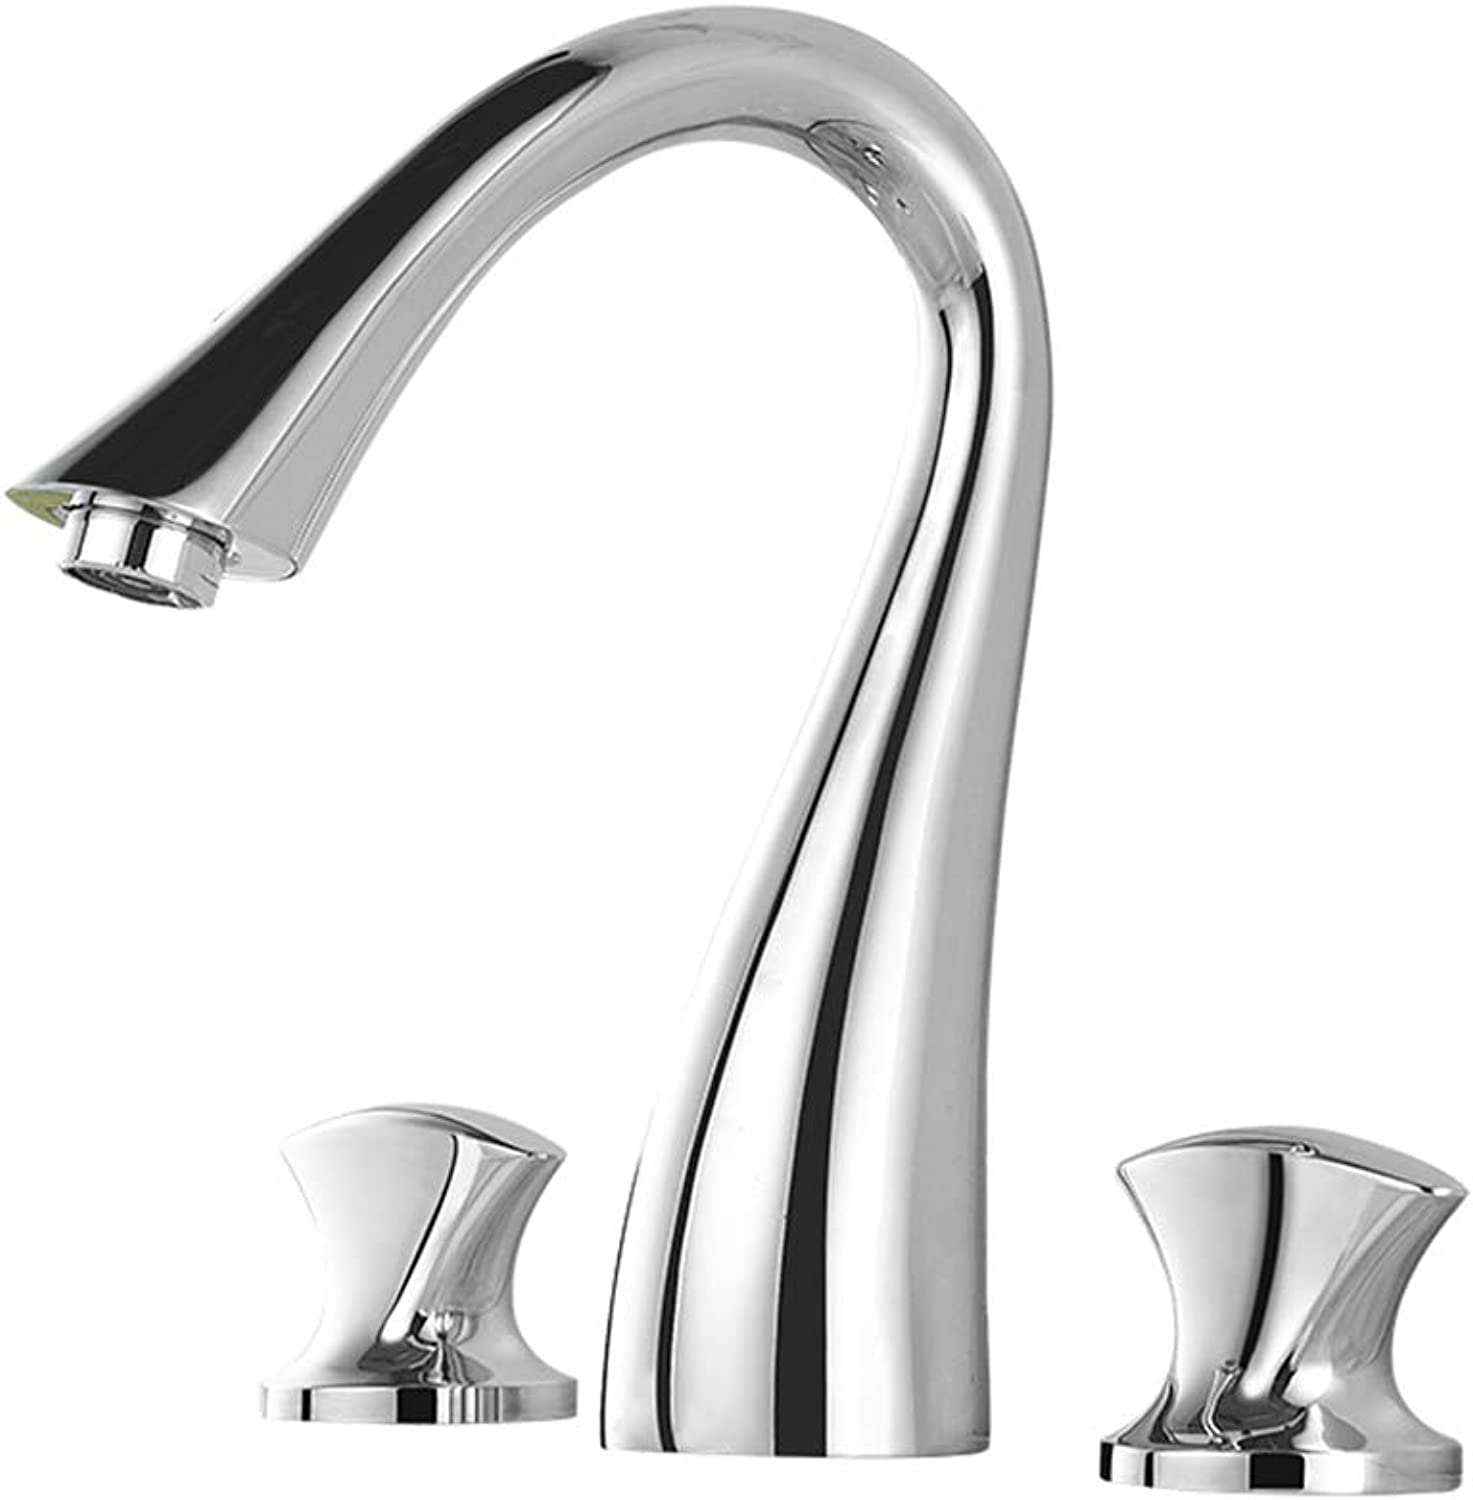 All-Copper Double-Hole Basin Hot And Cold Water Faucet, Three-Piece Bathroom Set, Double-Piece Split Three-Hole Washbasin Sink Faucet